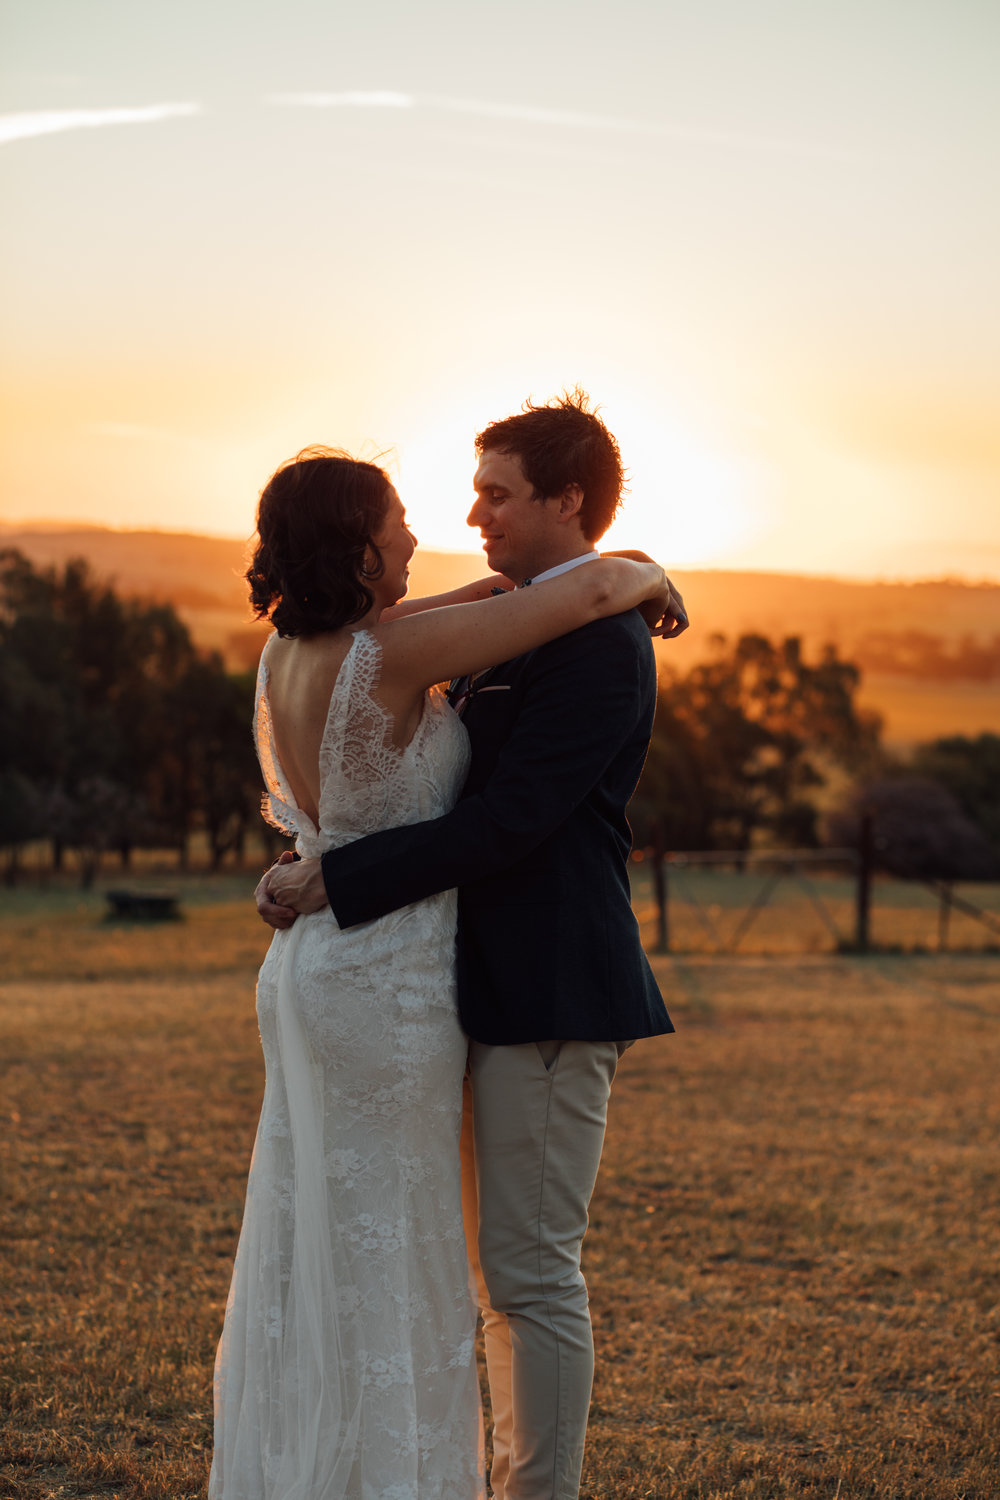 Picturesque photo opportunities   for weddings